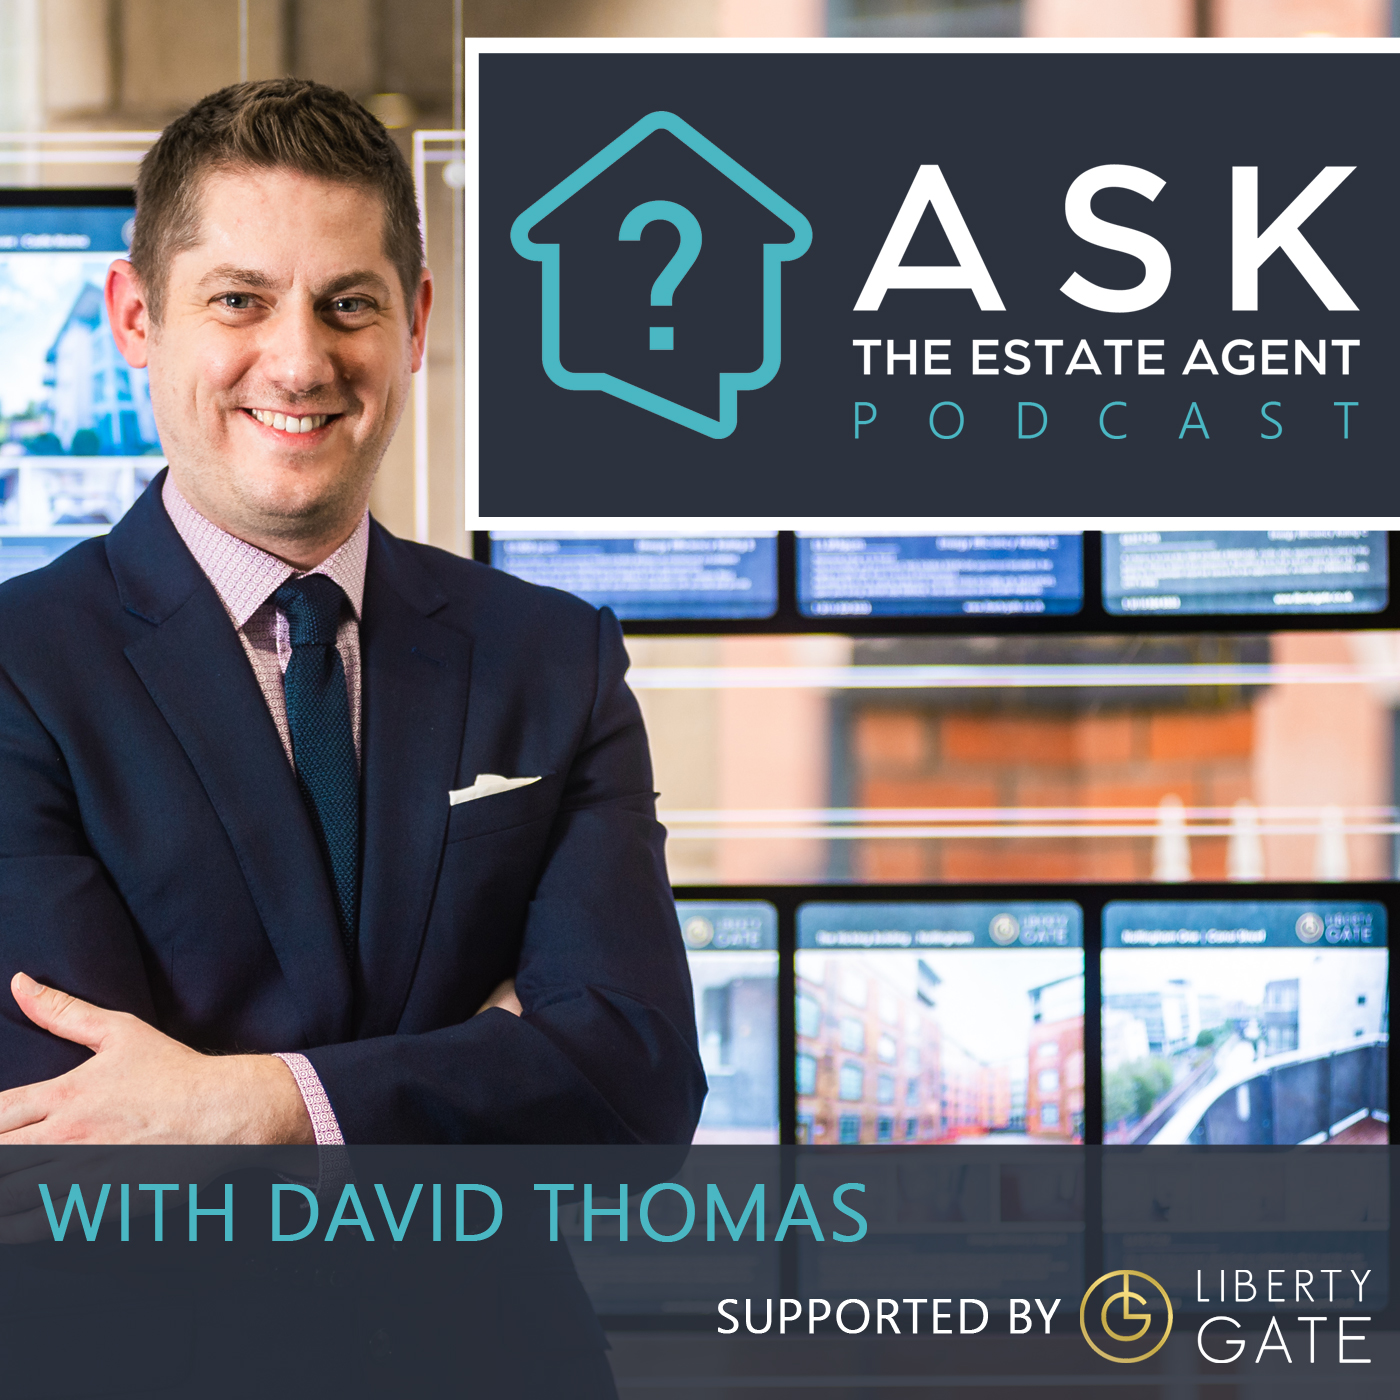 Artwork for podcast Ask the Estate Agent